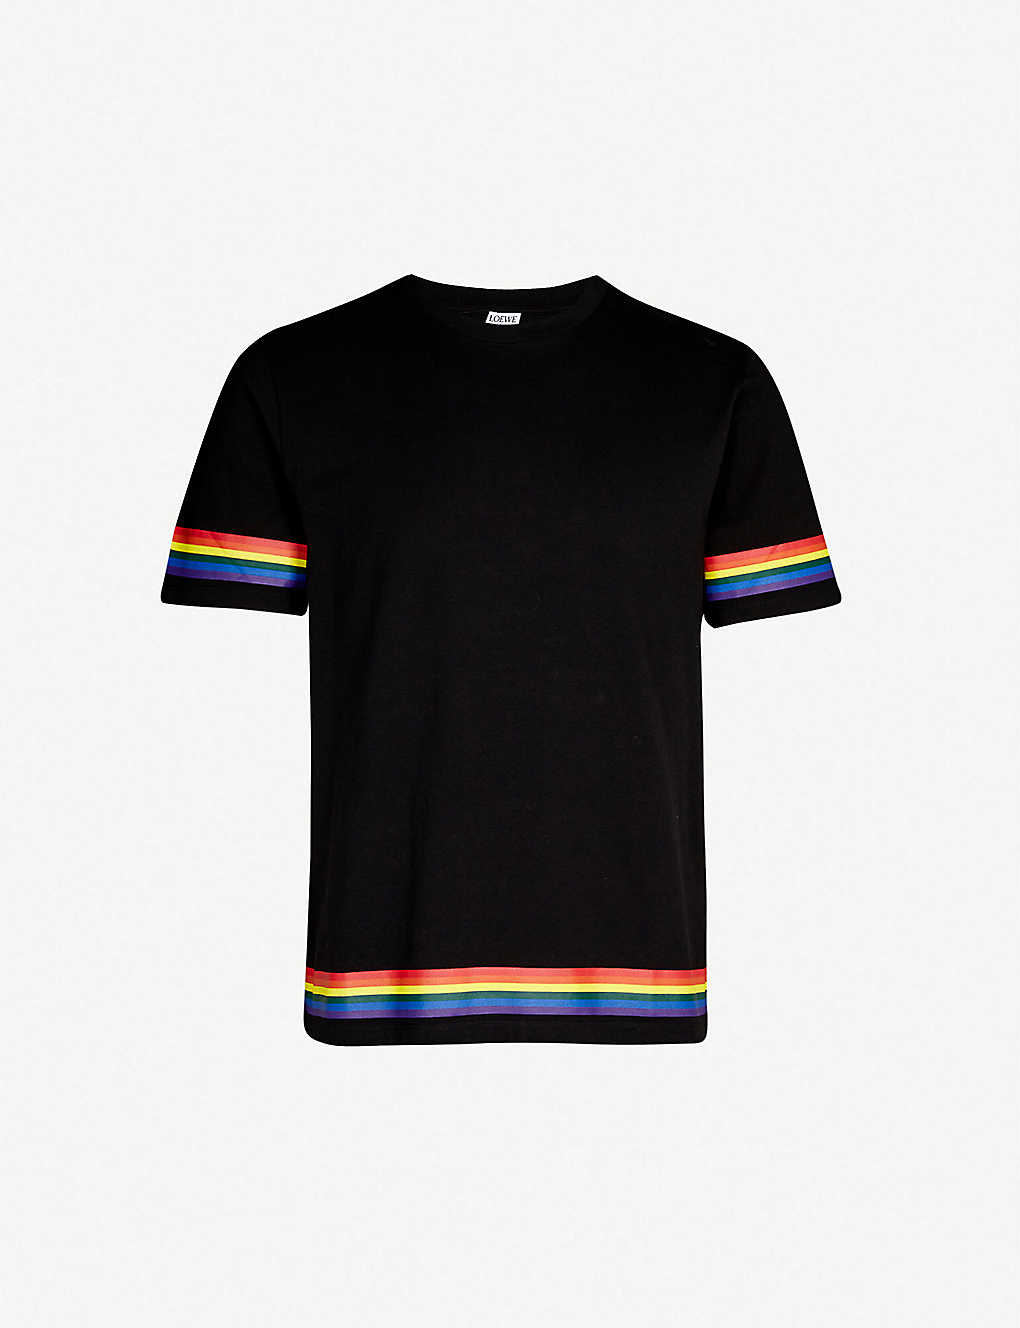 16efbe5545 LOEWE - Rainbow-stripe cotton-jersey T-shirt | Selfridges.com